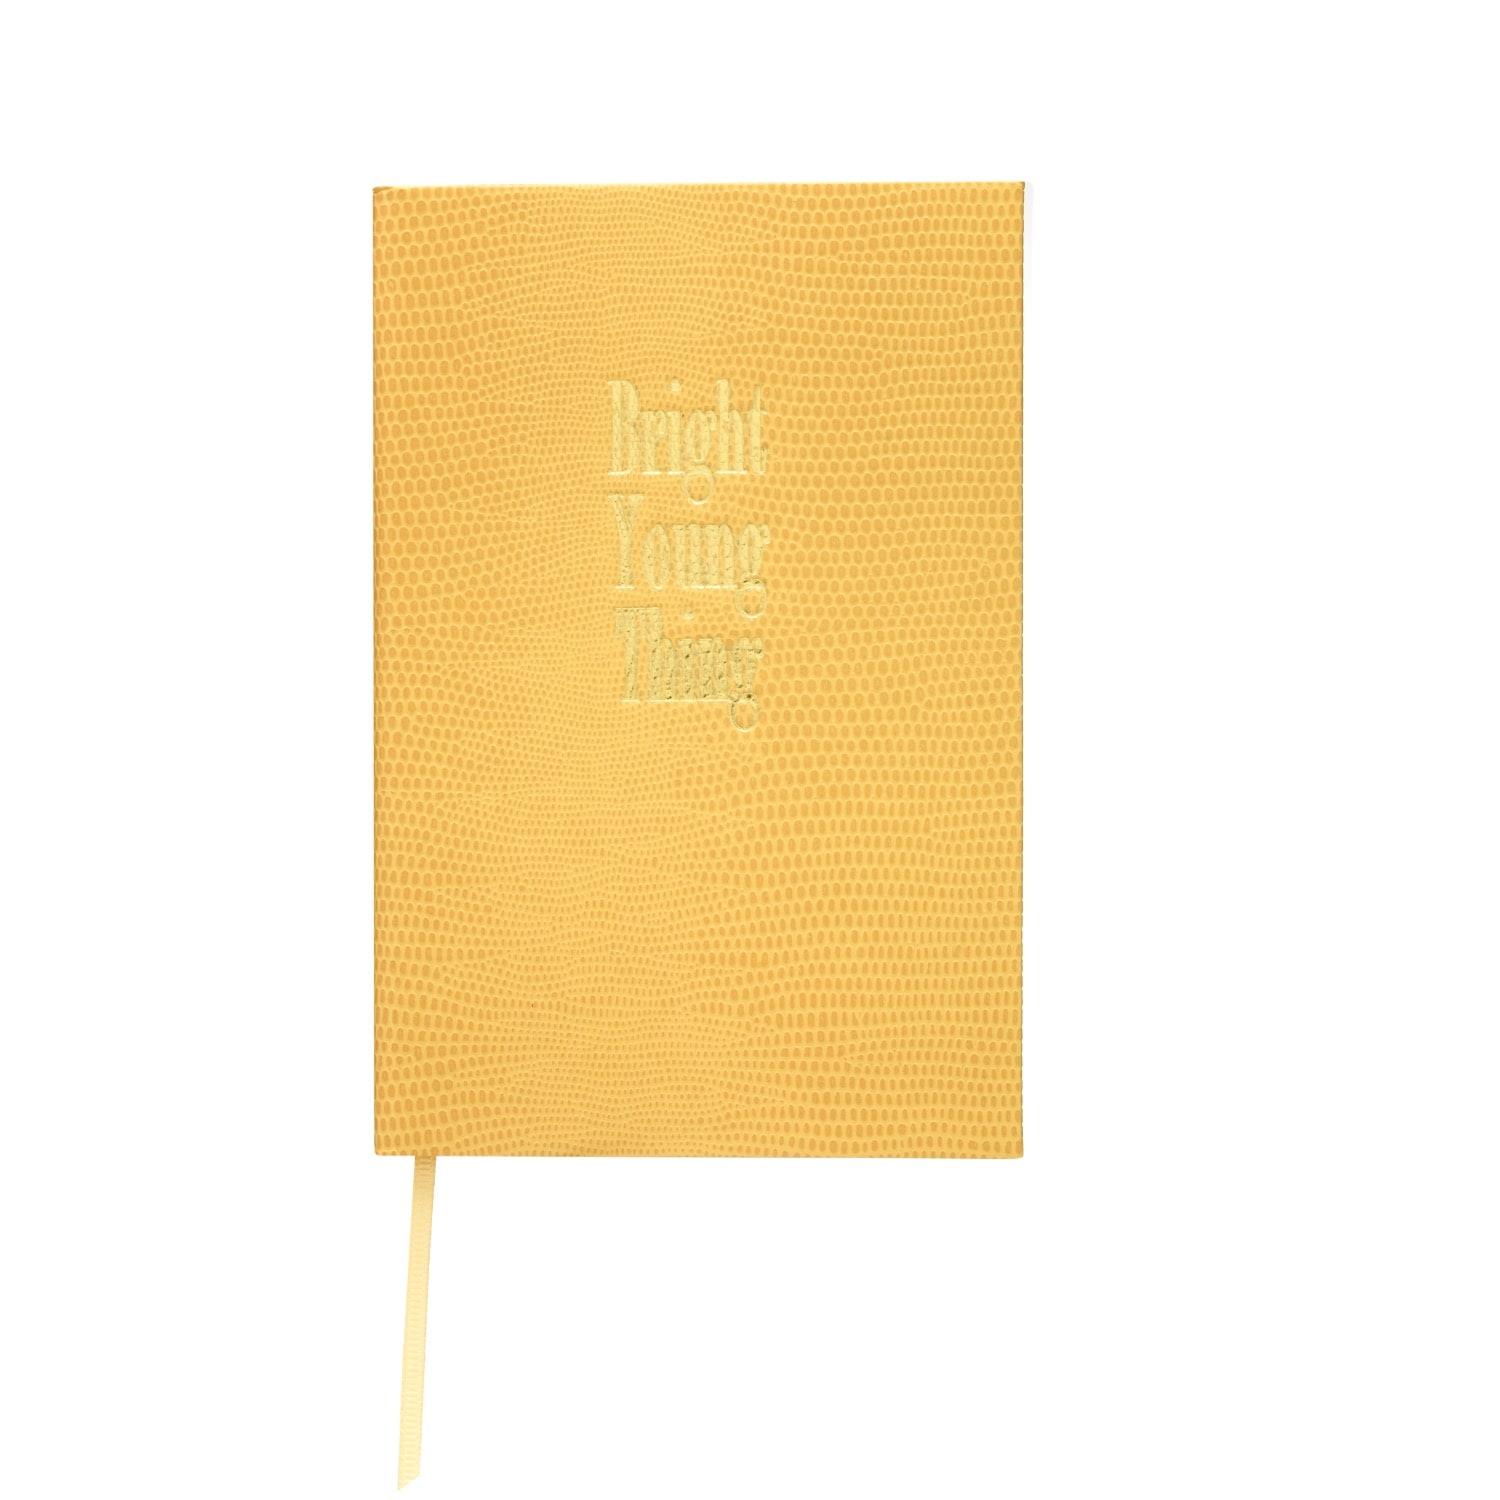 Sloane Stationery - Bright Young Thing Pocket Notebook